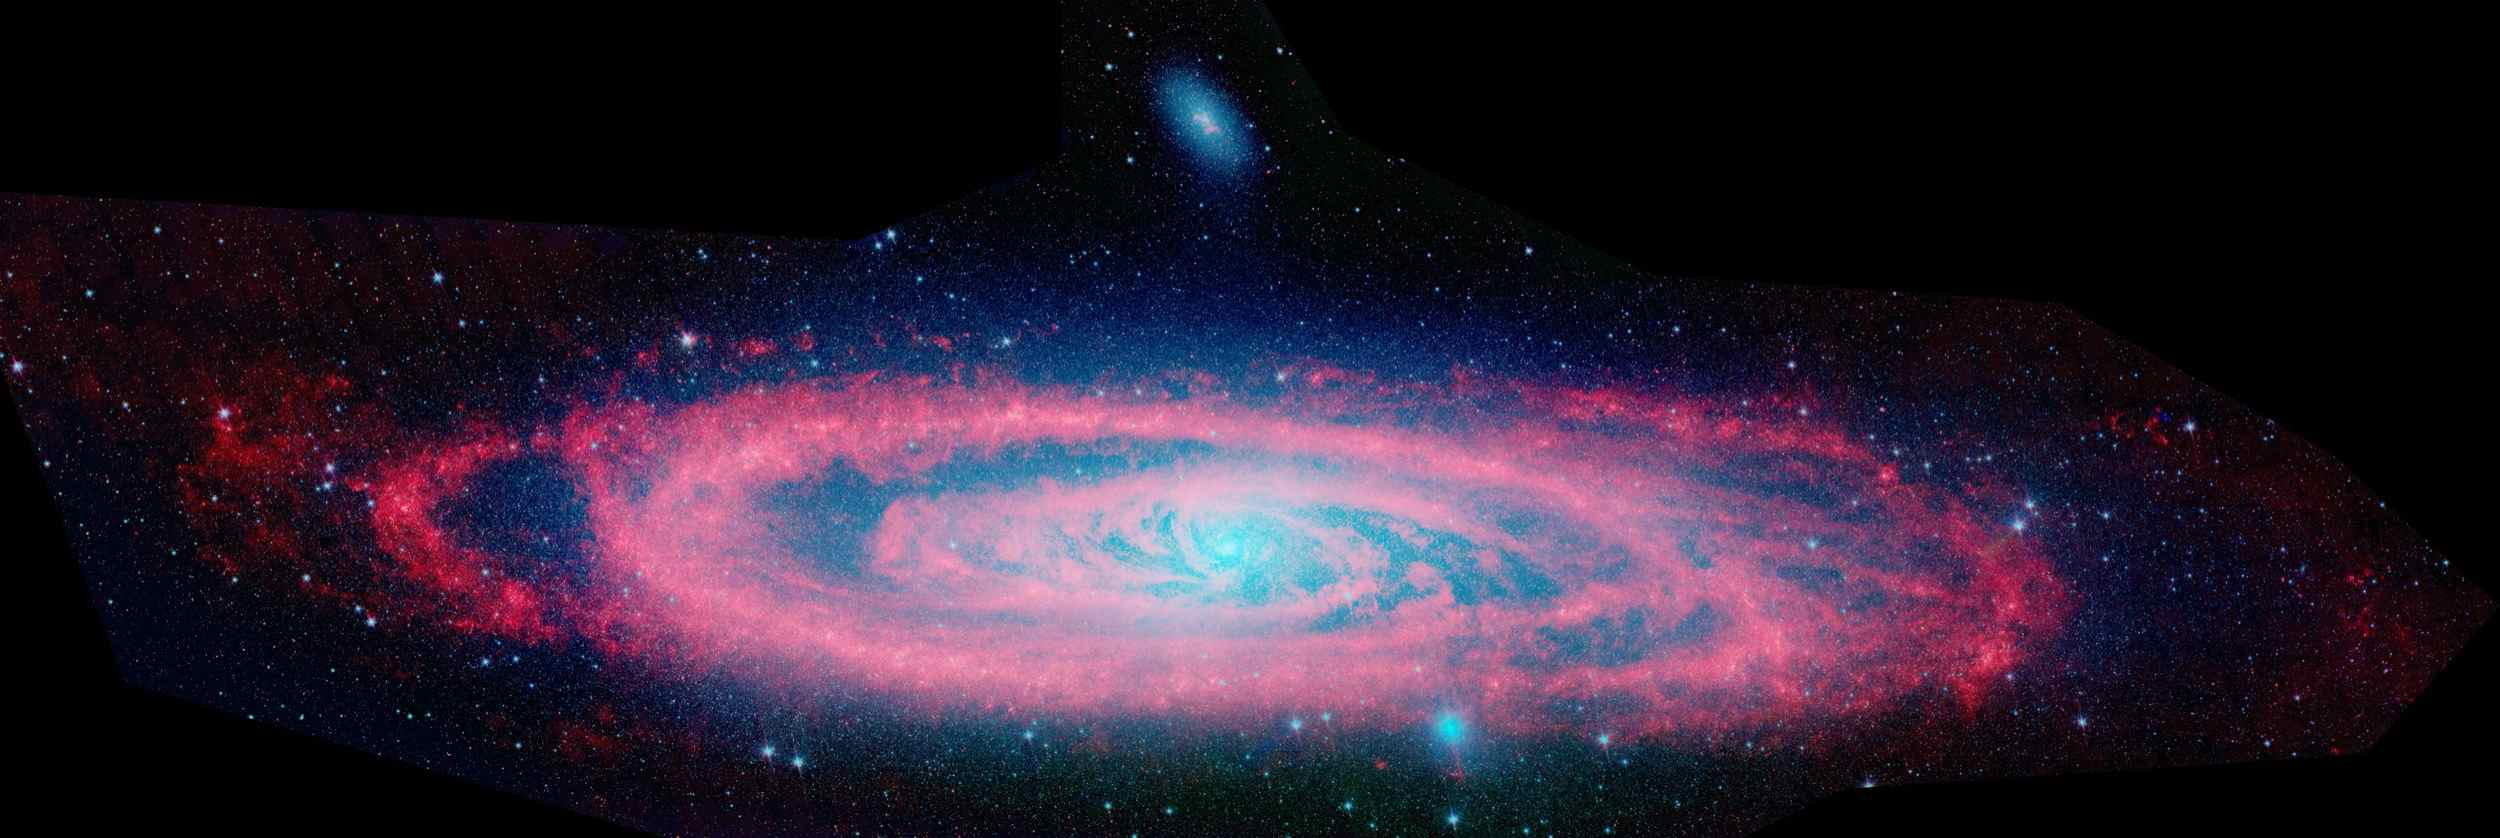 This image shows the Andromeda galaxy, first as seen in visible light by the National Optical Astronomy Observatory, then as seen in infrared by NASA's Spitzer Space Telescope.